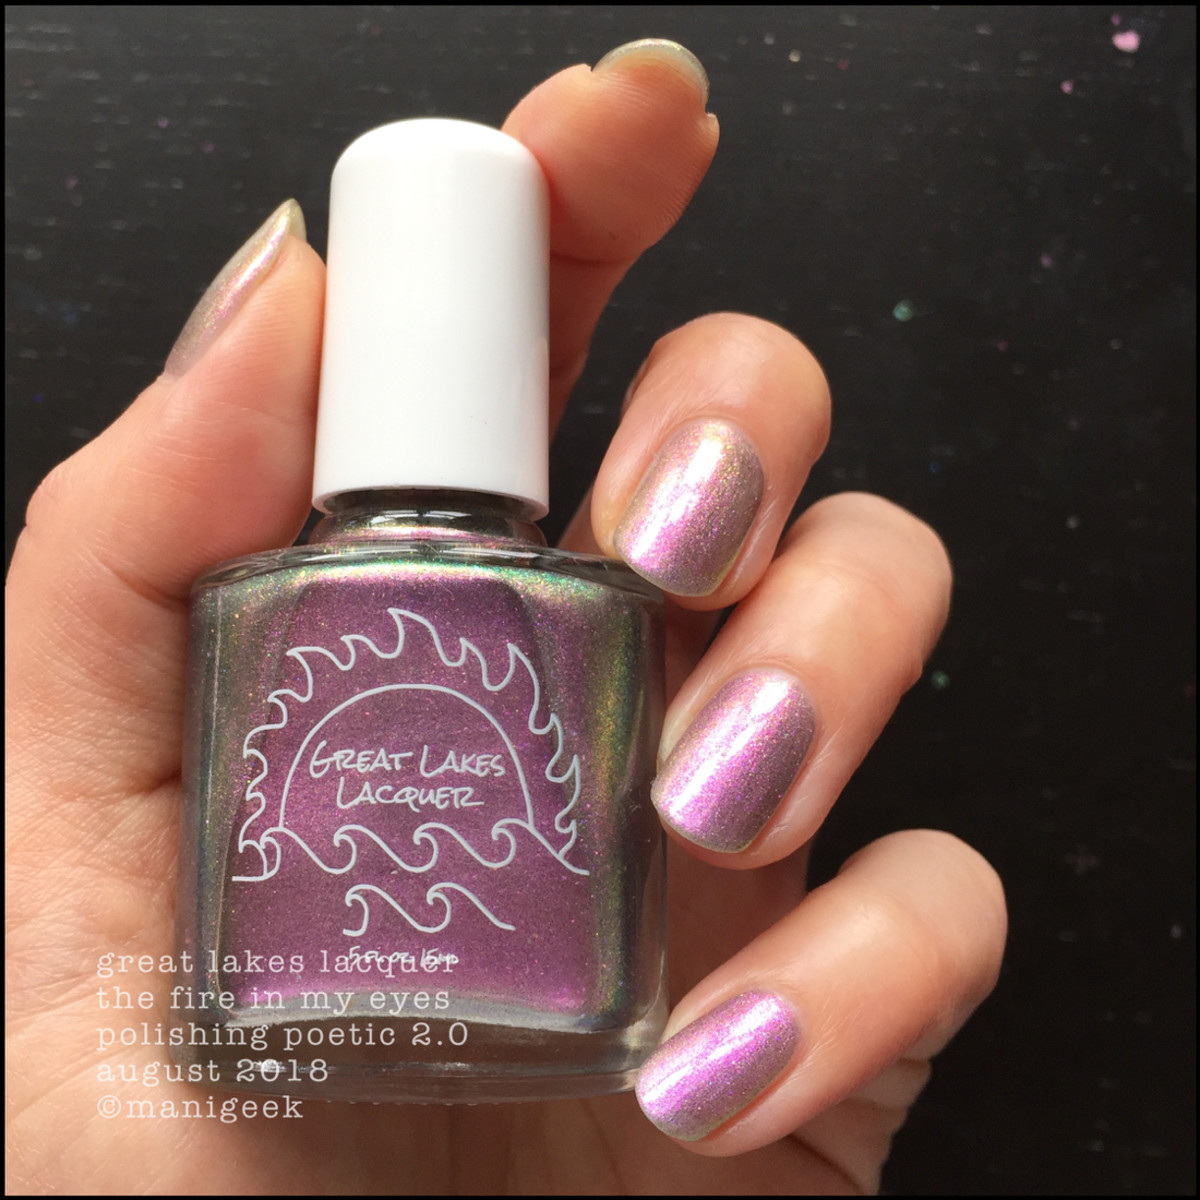 Great Lakes Lacquer The Fire In My Eyes 2 _ Great Lakes Lacquer Polishing Poetic 2.0 Swatches & Review